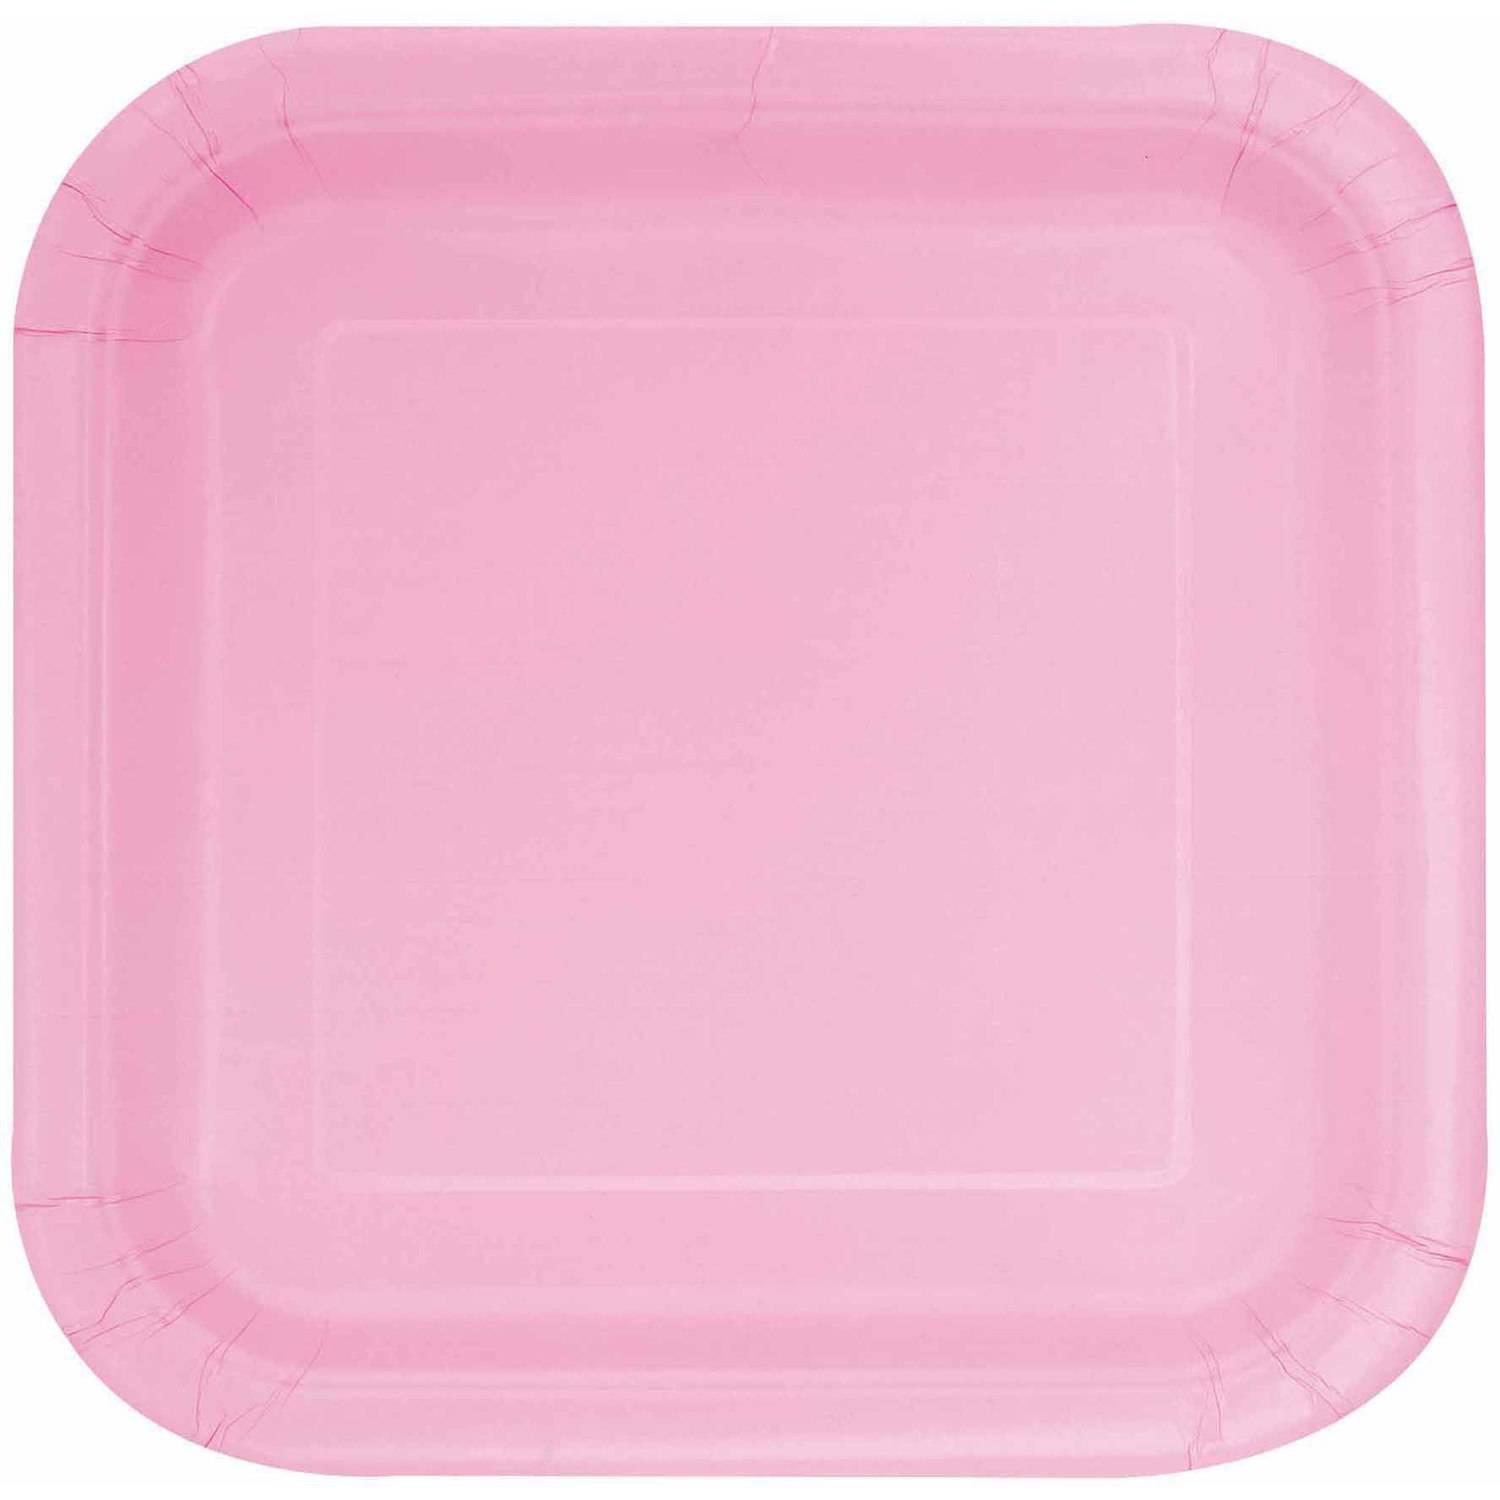 Square Paper Plates 7 in Light Pink 16ct  sc 1 st  Walmart : rectangle paper plates - pezcame.com